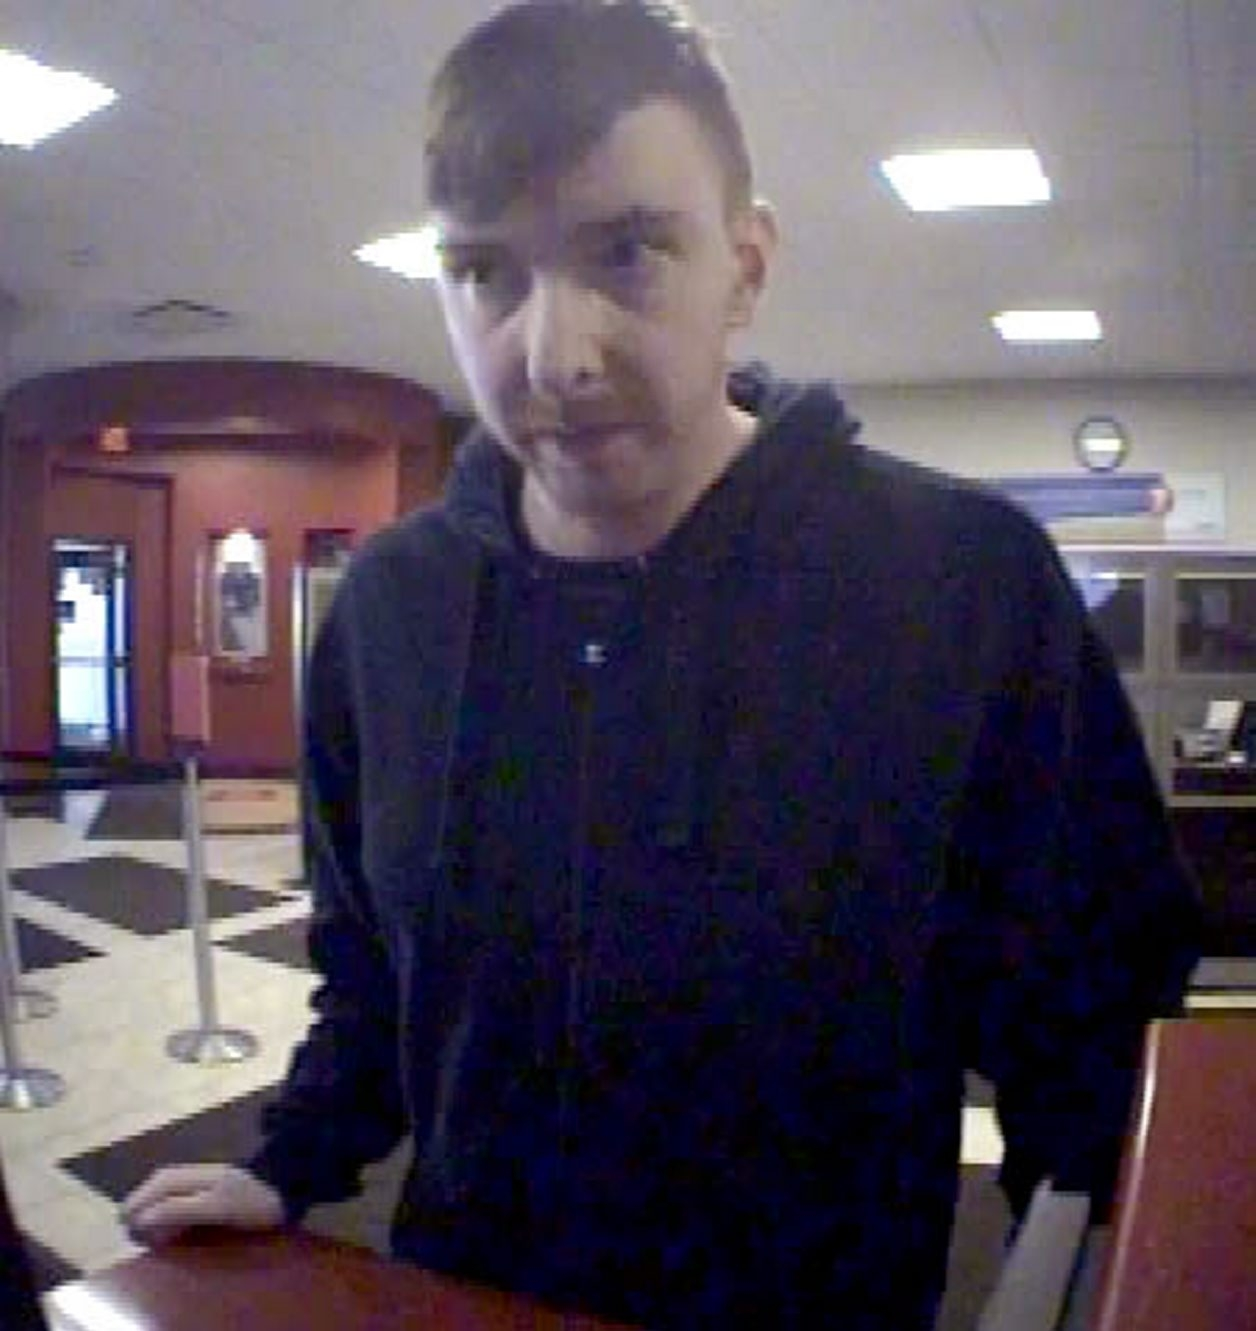 This surveillance photo of the suspect in the KeyBank branch robbery was released by Town of Tonawanda police.